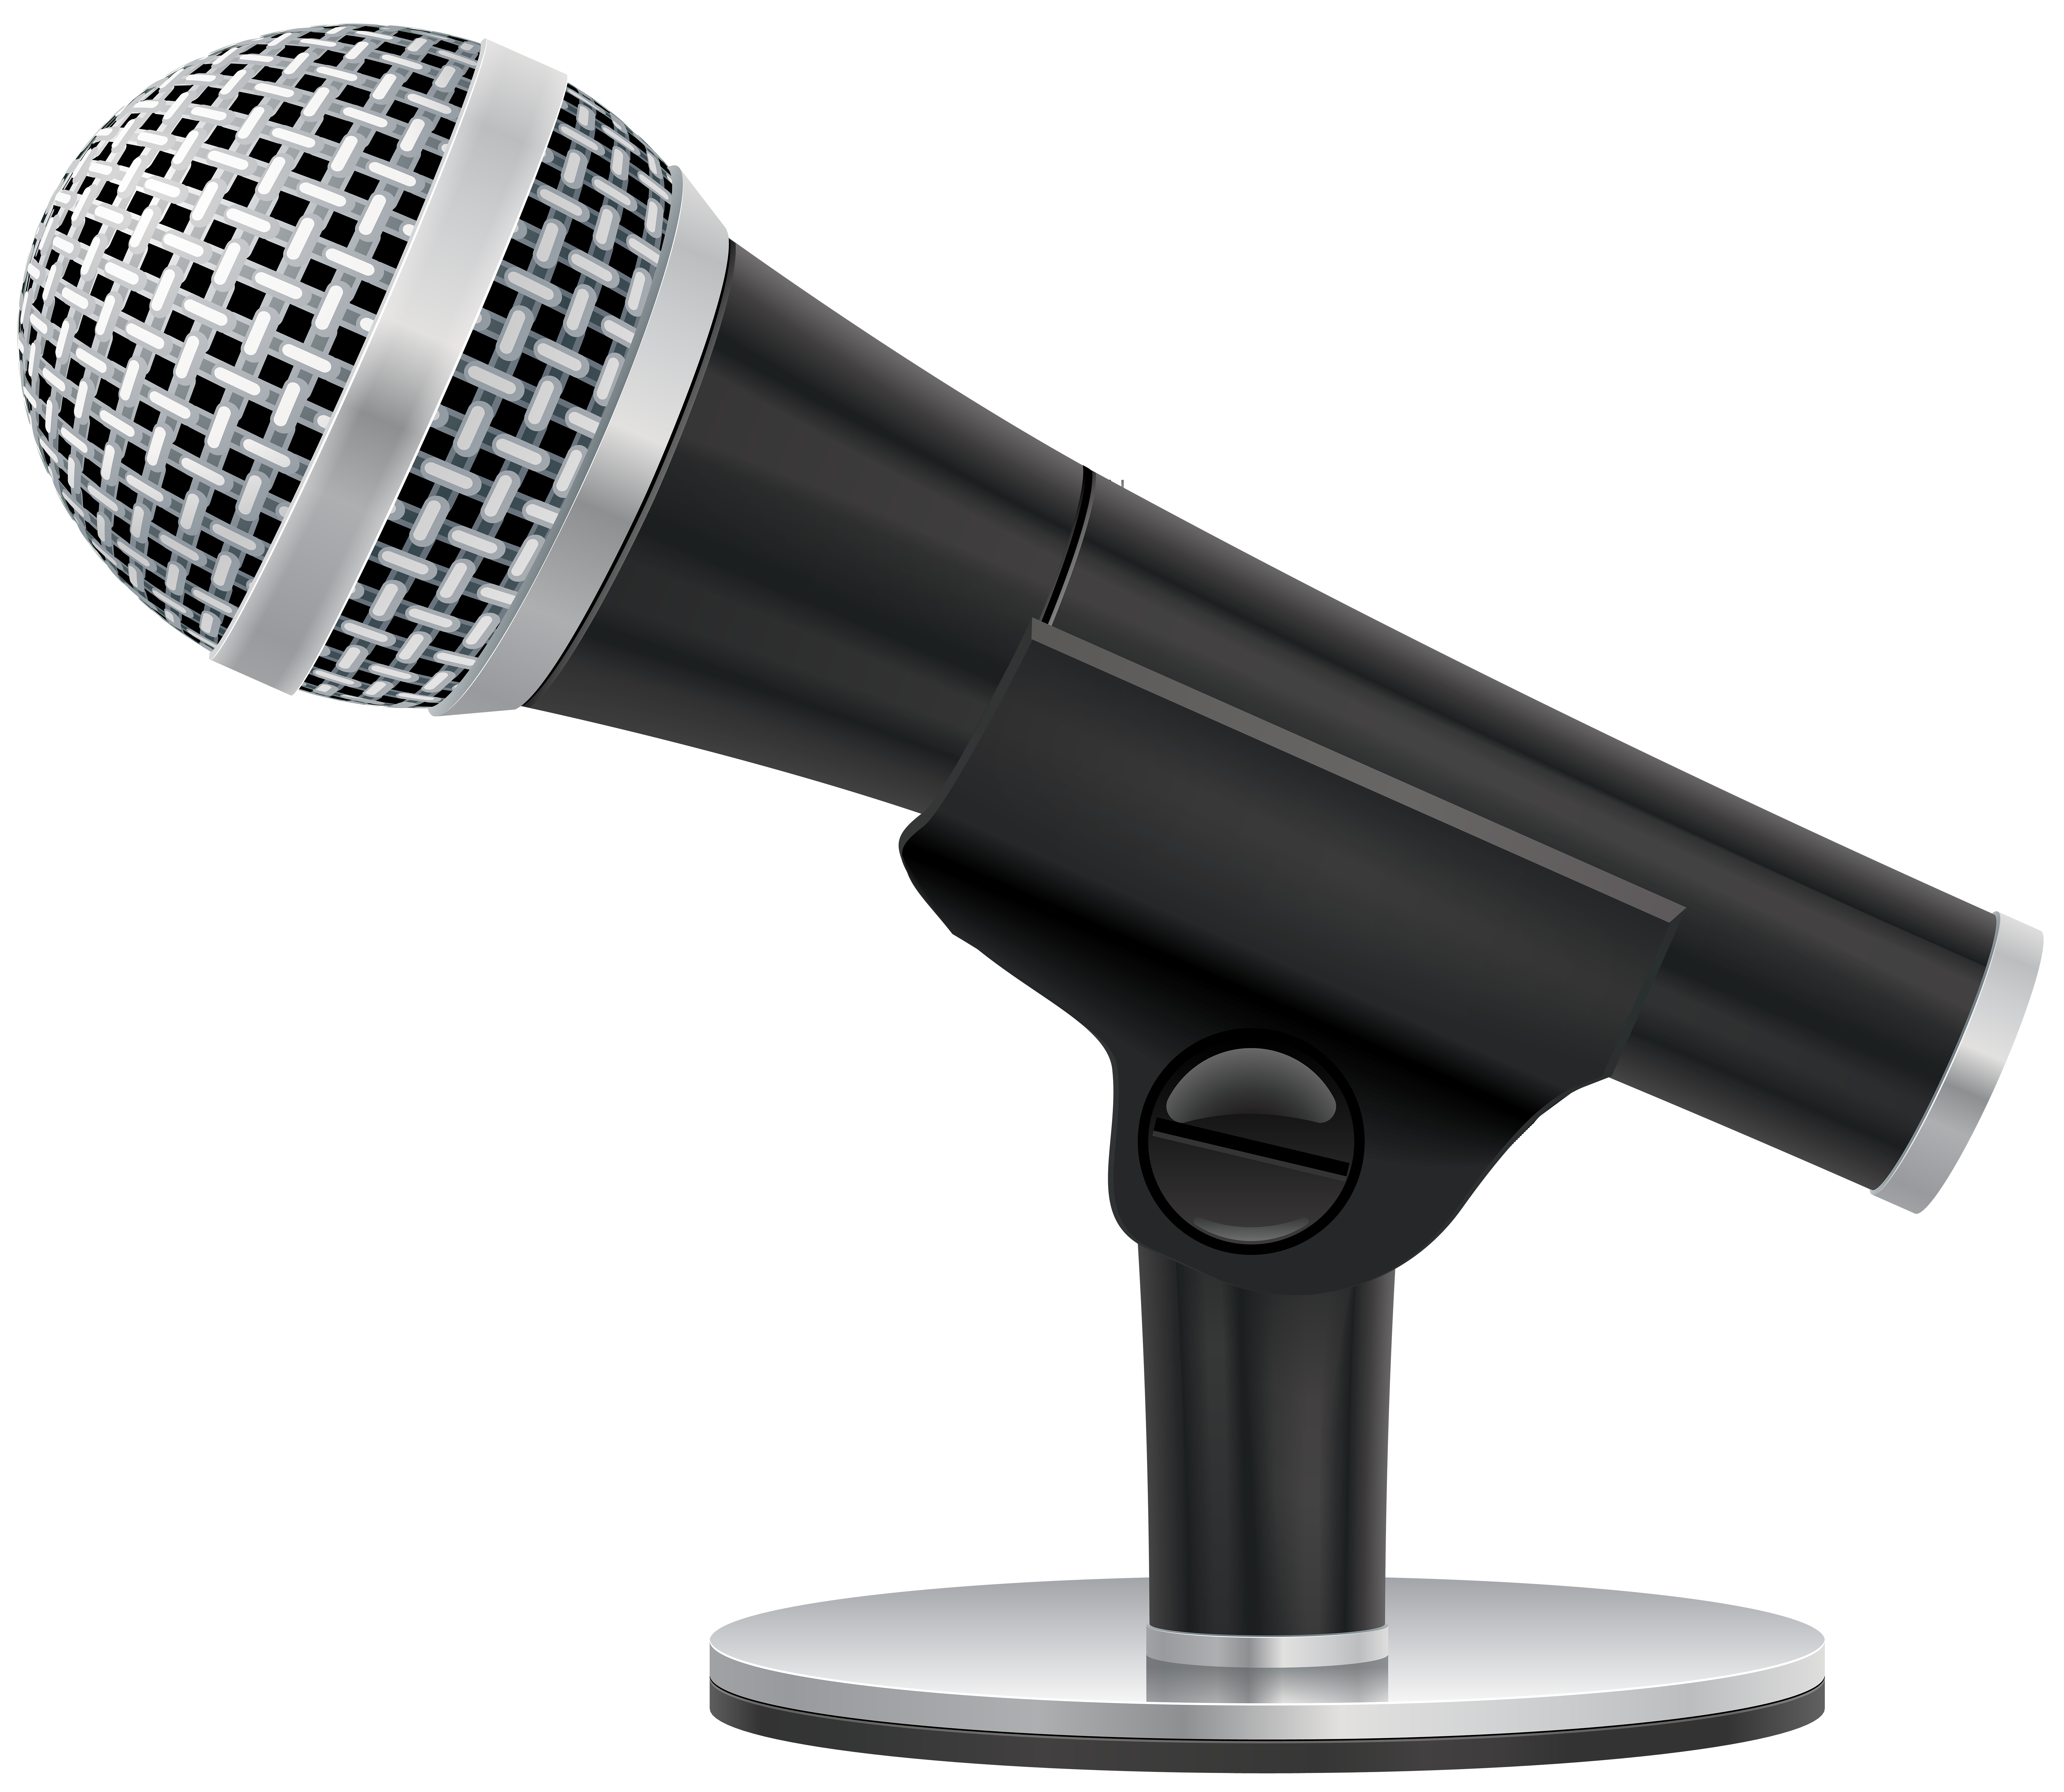 Png clip art image. Microphone clipart studio microphone